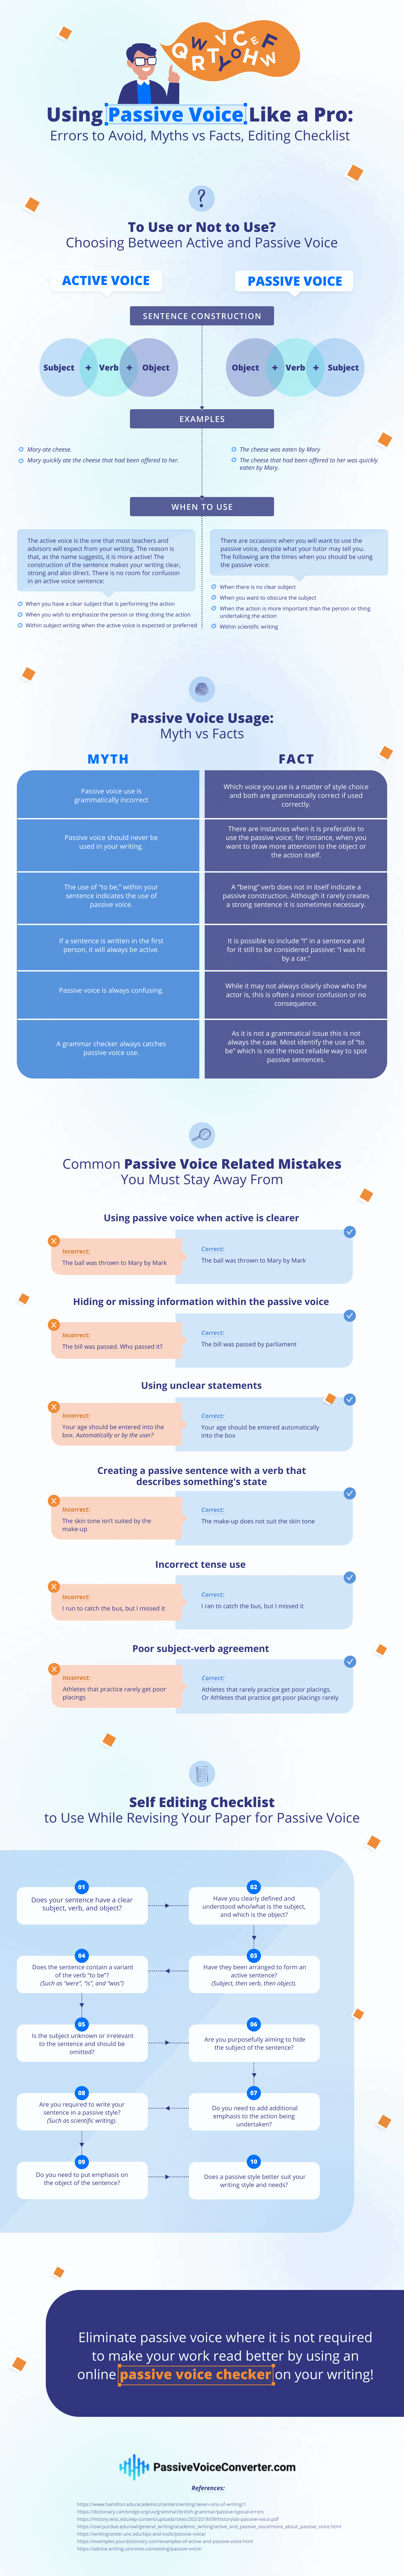 using passive voice like a pro, errors to avoid, myths vs facts, editing checklist